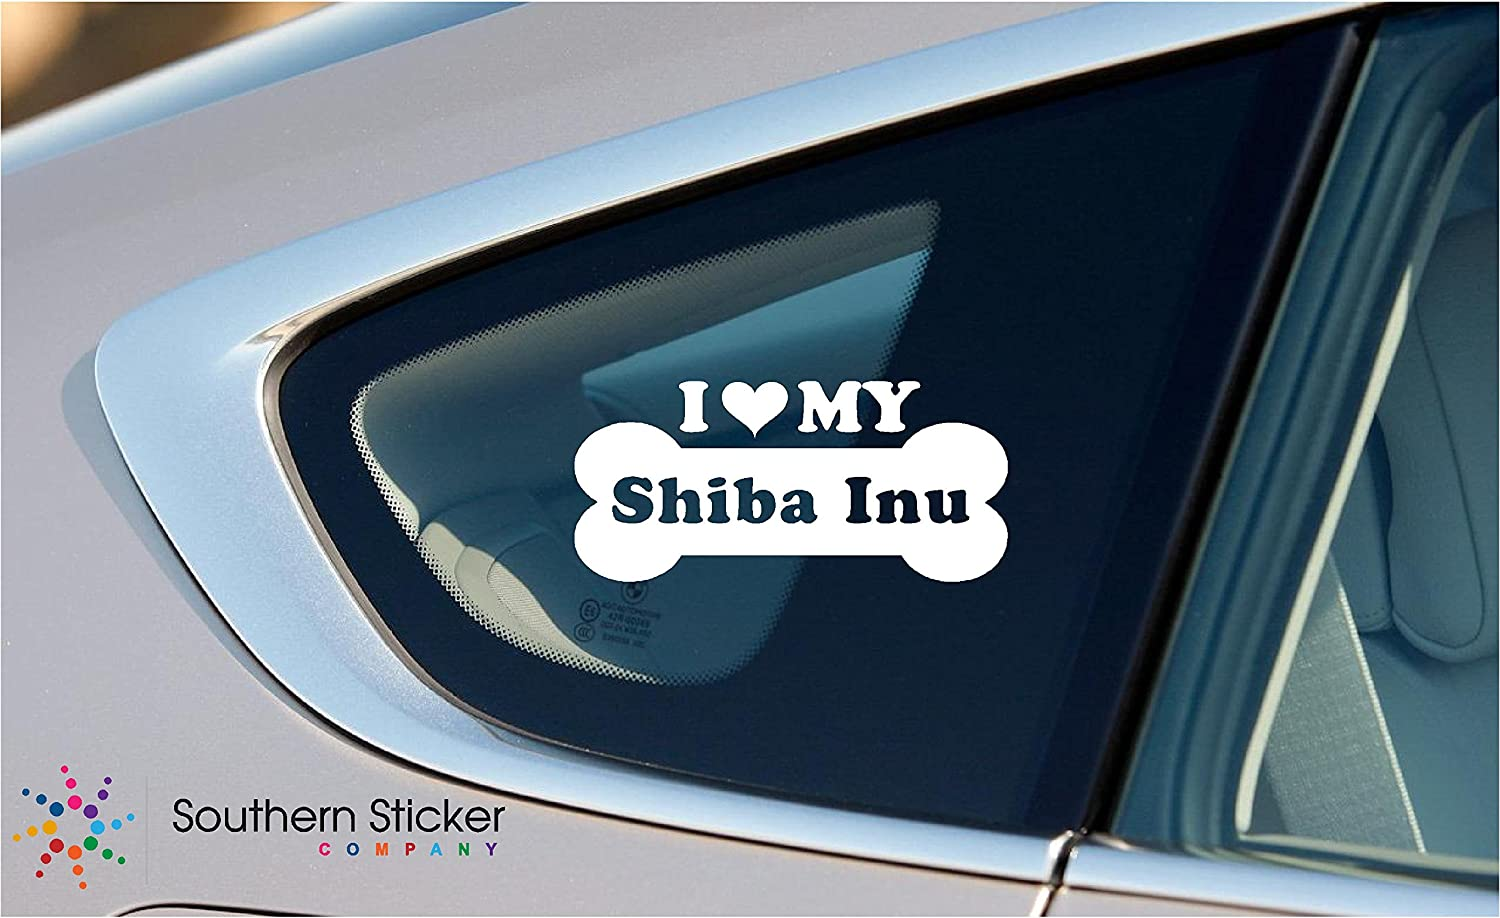 I Love My Shiba Inu Dog Bone Puppy Symbol White Vinyl Car Sticker Symbol Silhouette Keypad Track Pad Decal Laptop Skin Ipad Macbook Window Truck Motorcycle